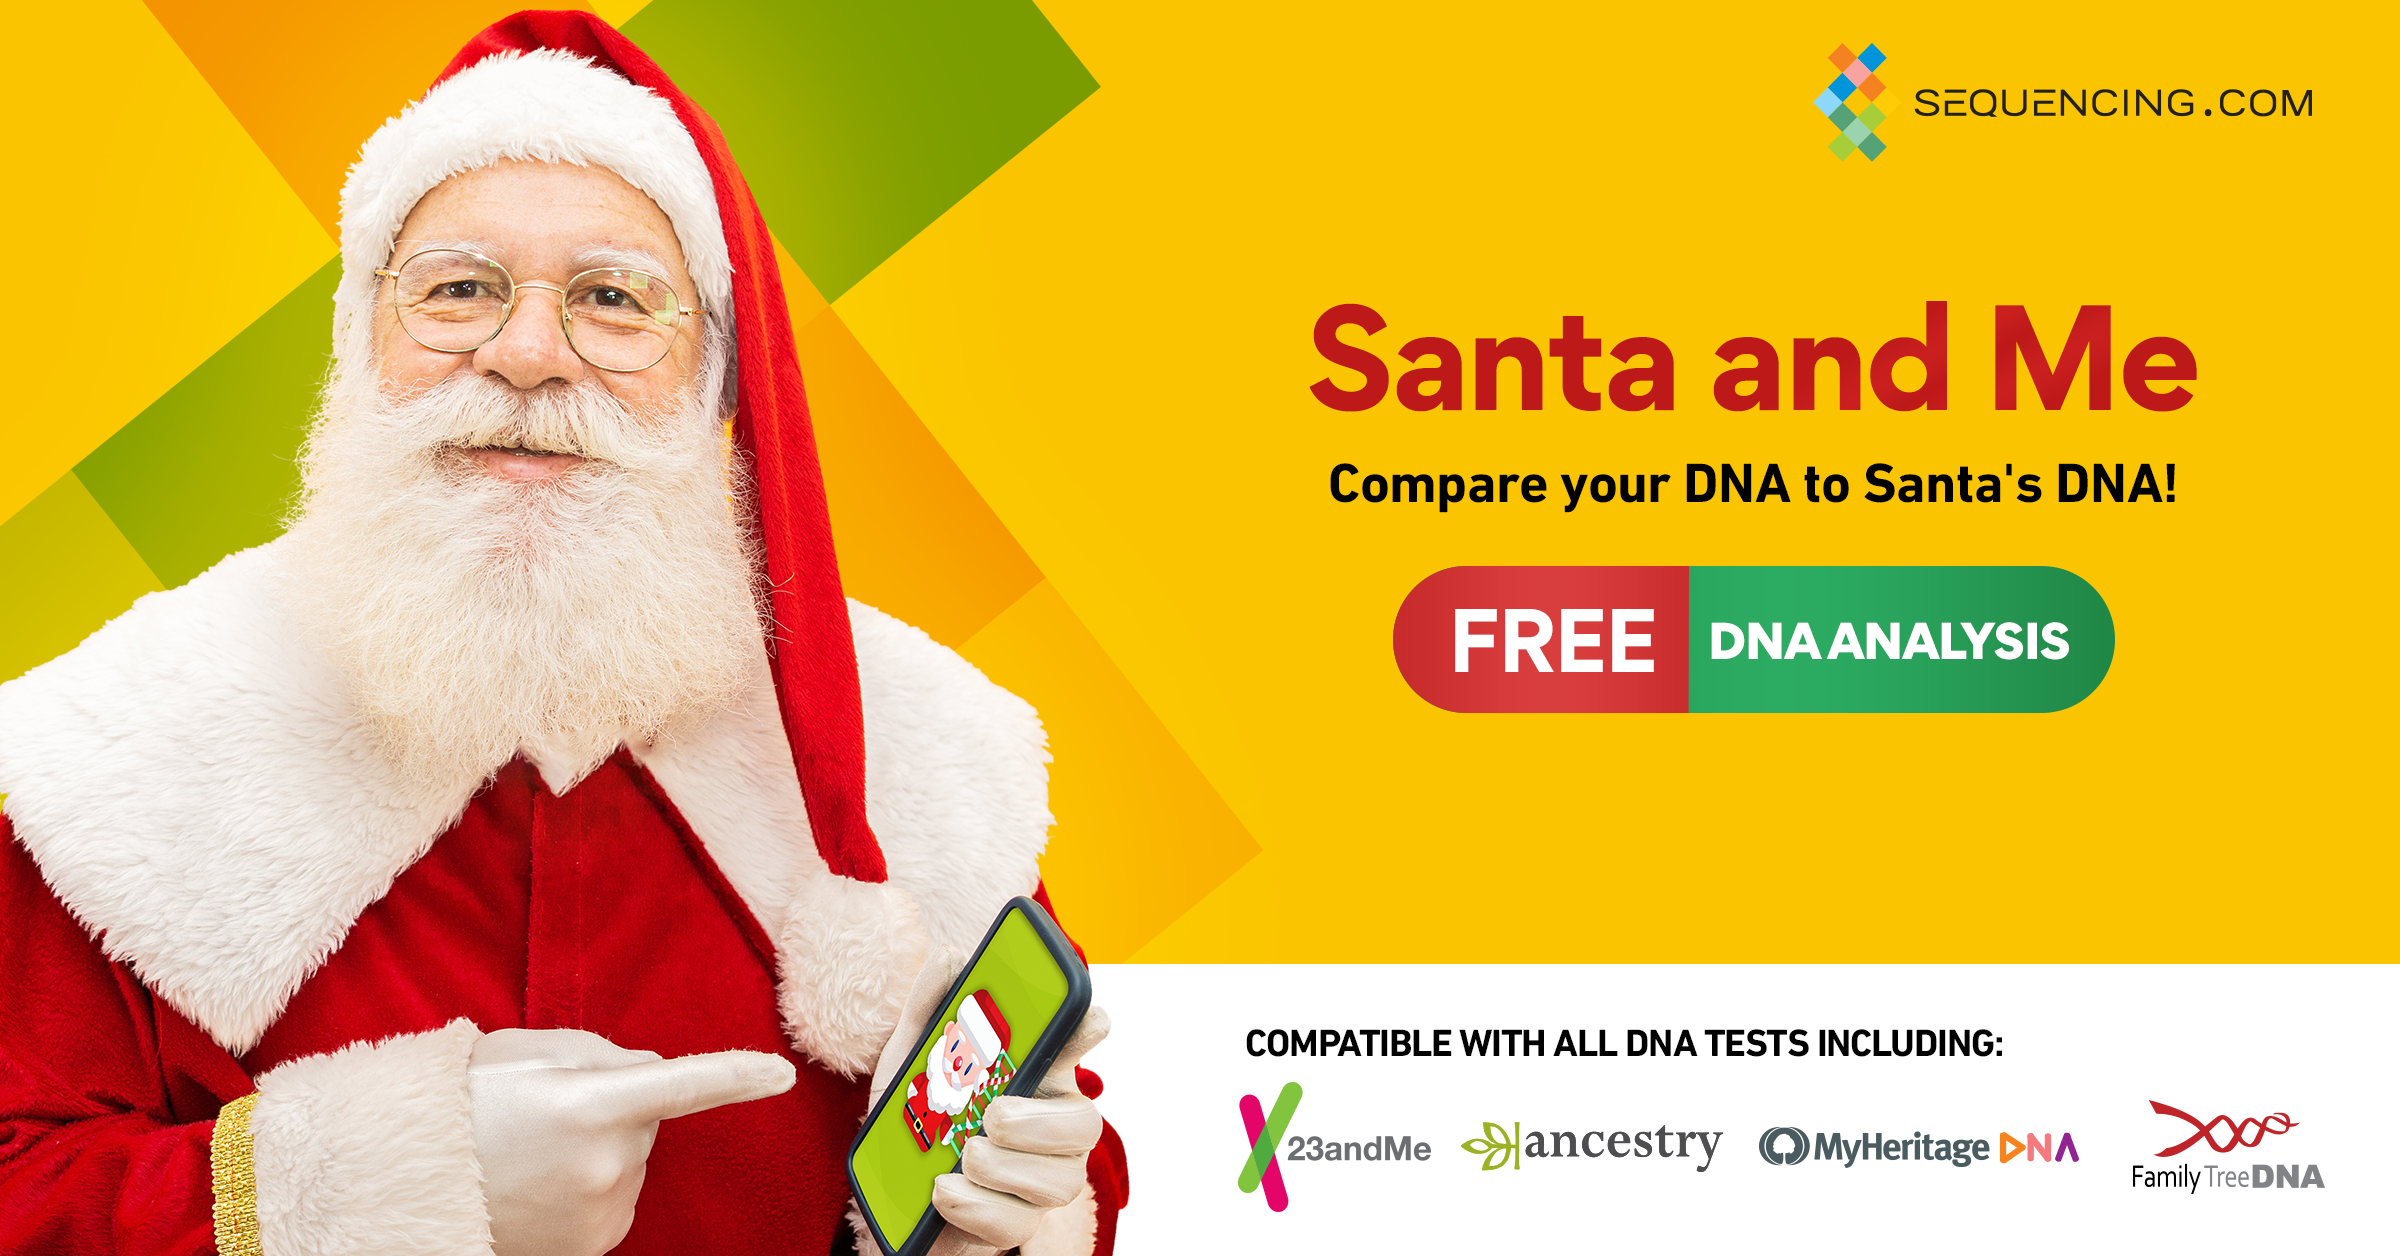 Santa and Me raw DNA data analysis